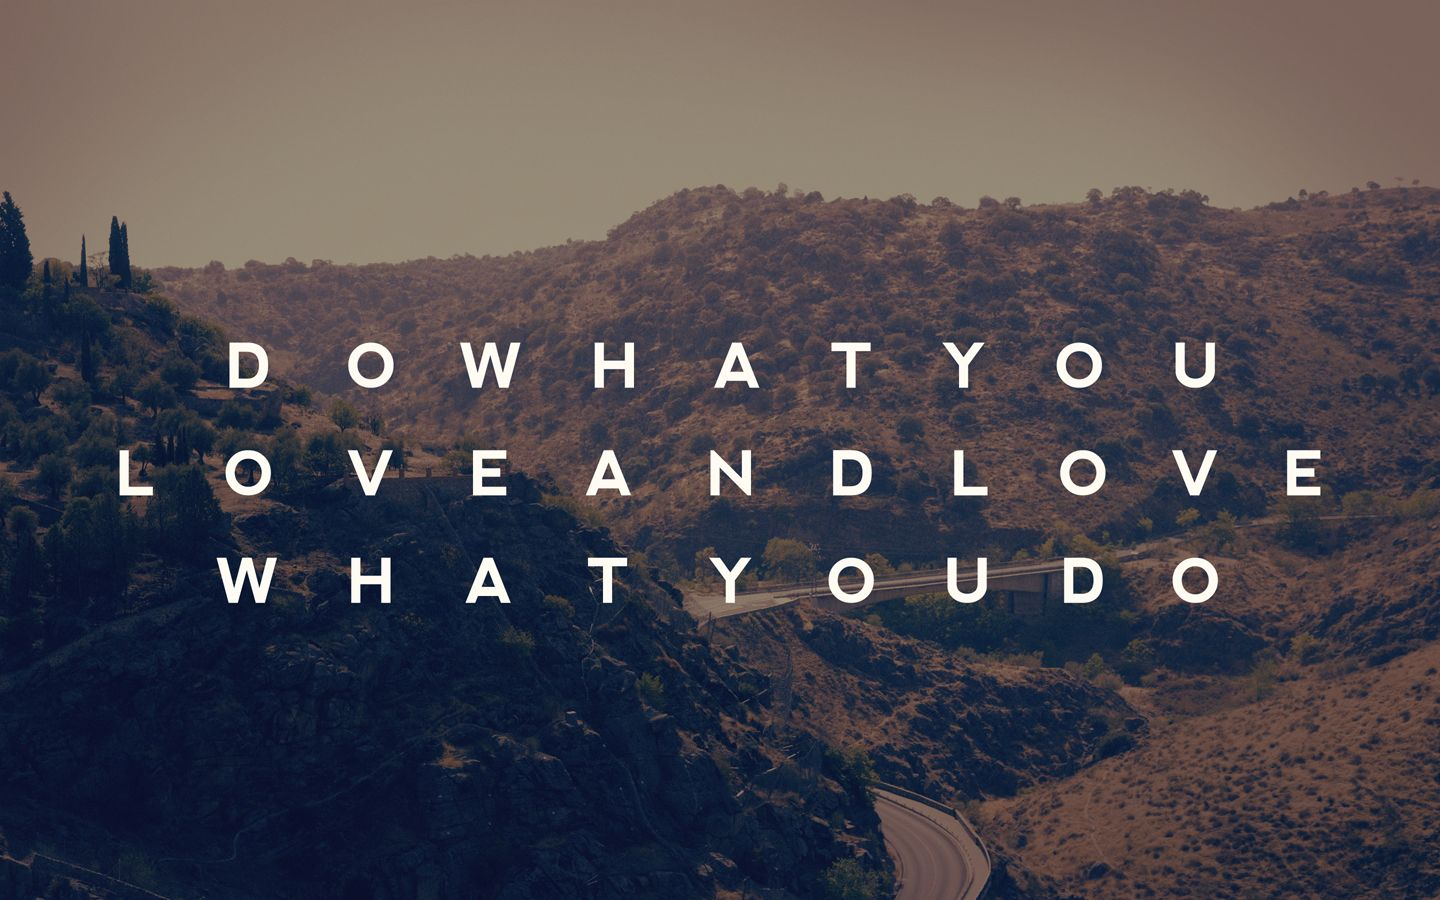 Love Quotes Wallpaper For Pc : Hipster Wallpaper Desktop Images & Pictures - Becuo admired quotes Pinterest Hipster ...